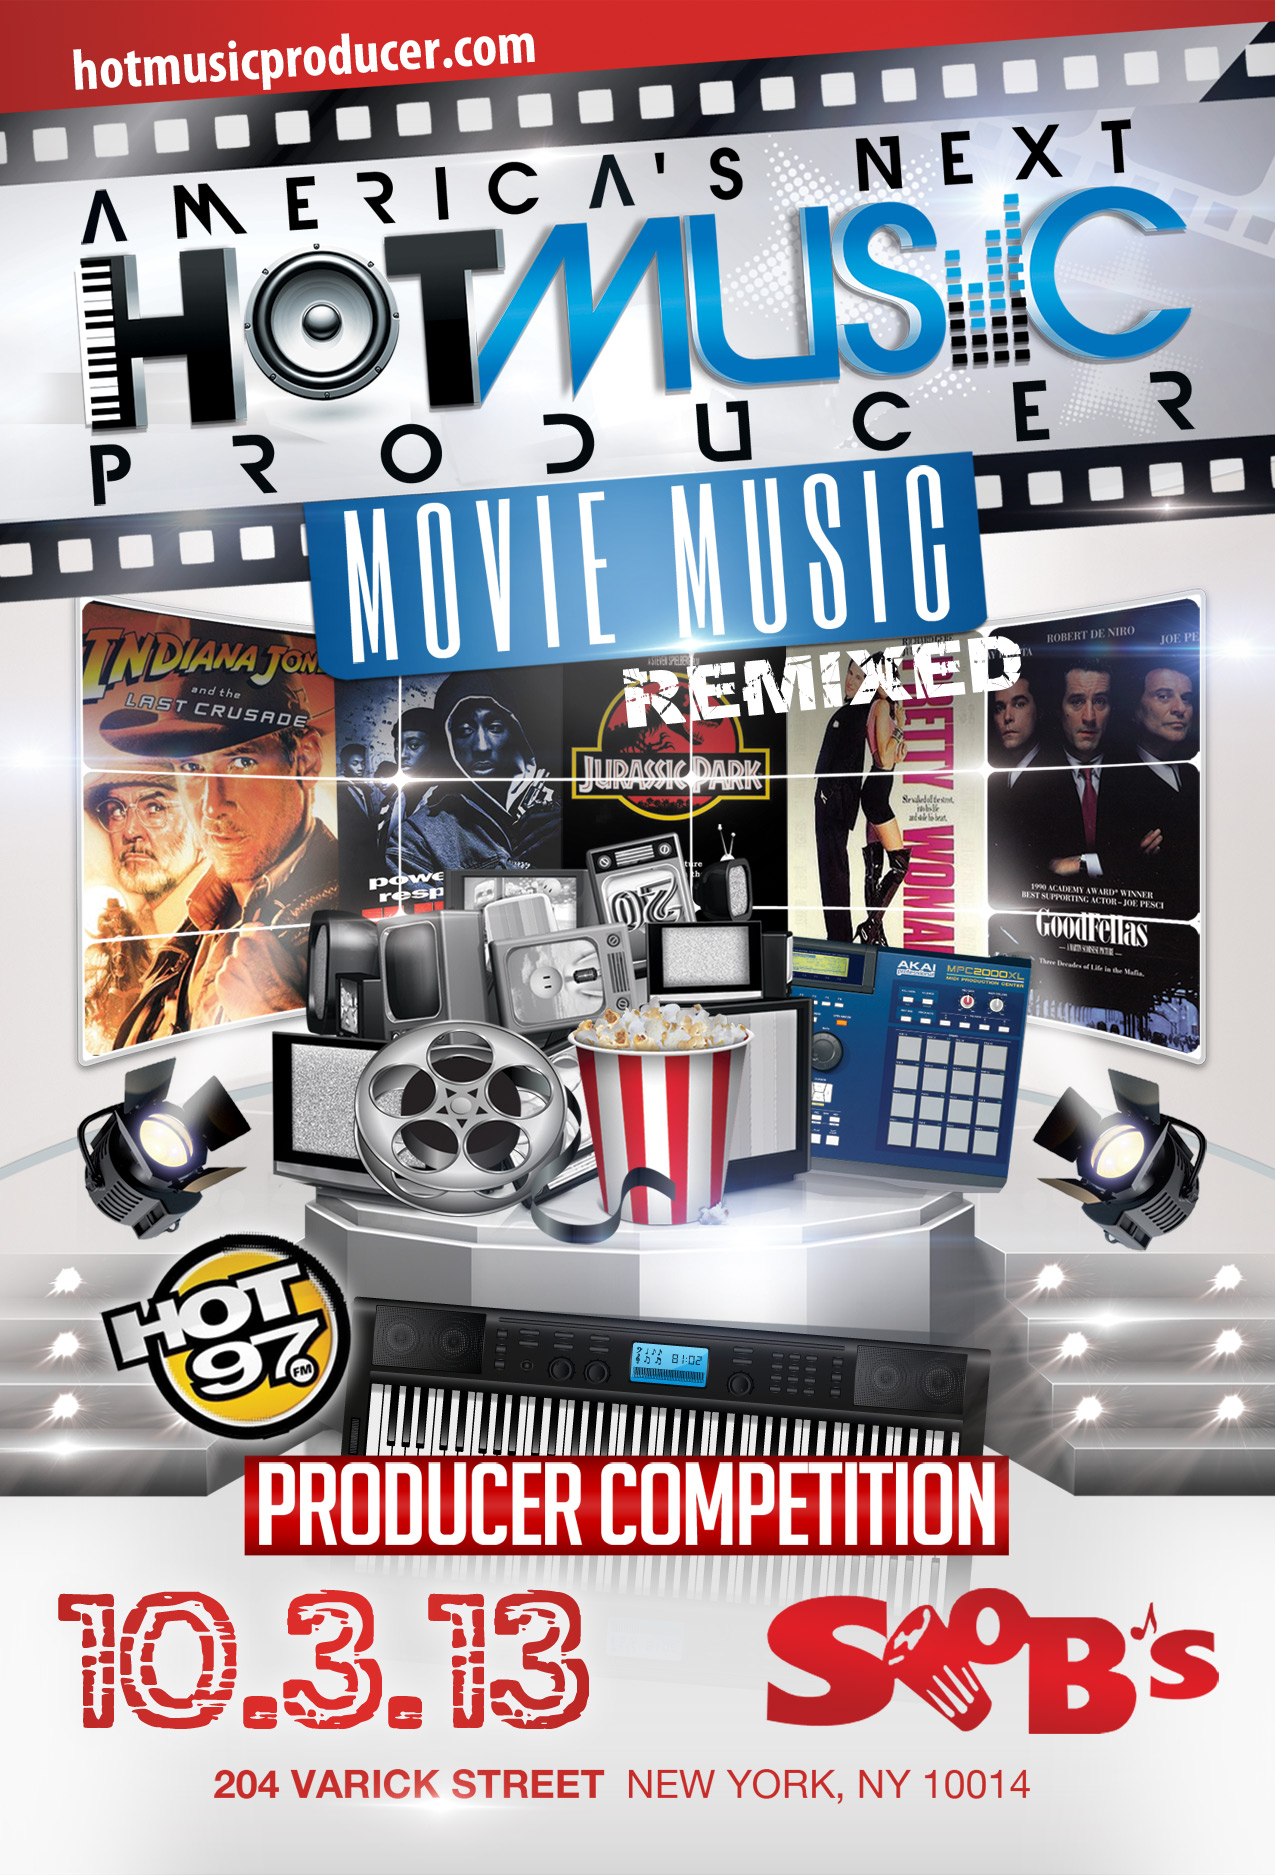 Flyer for America's Next Hot Music Producer Movie Music Episode